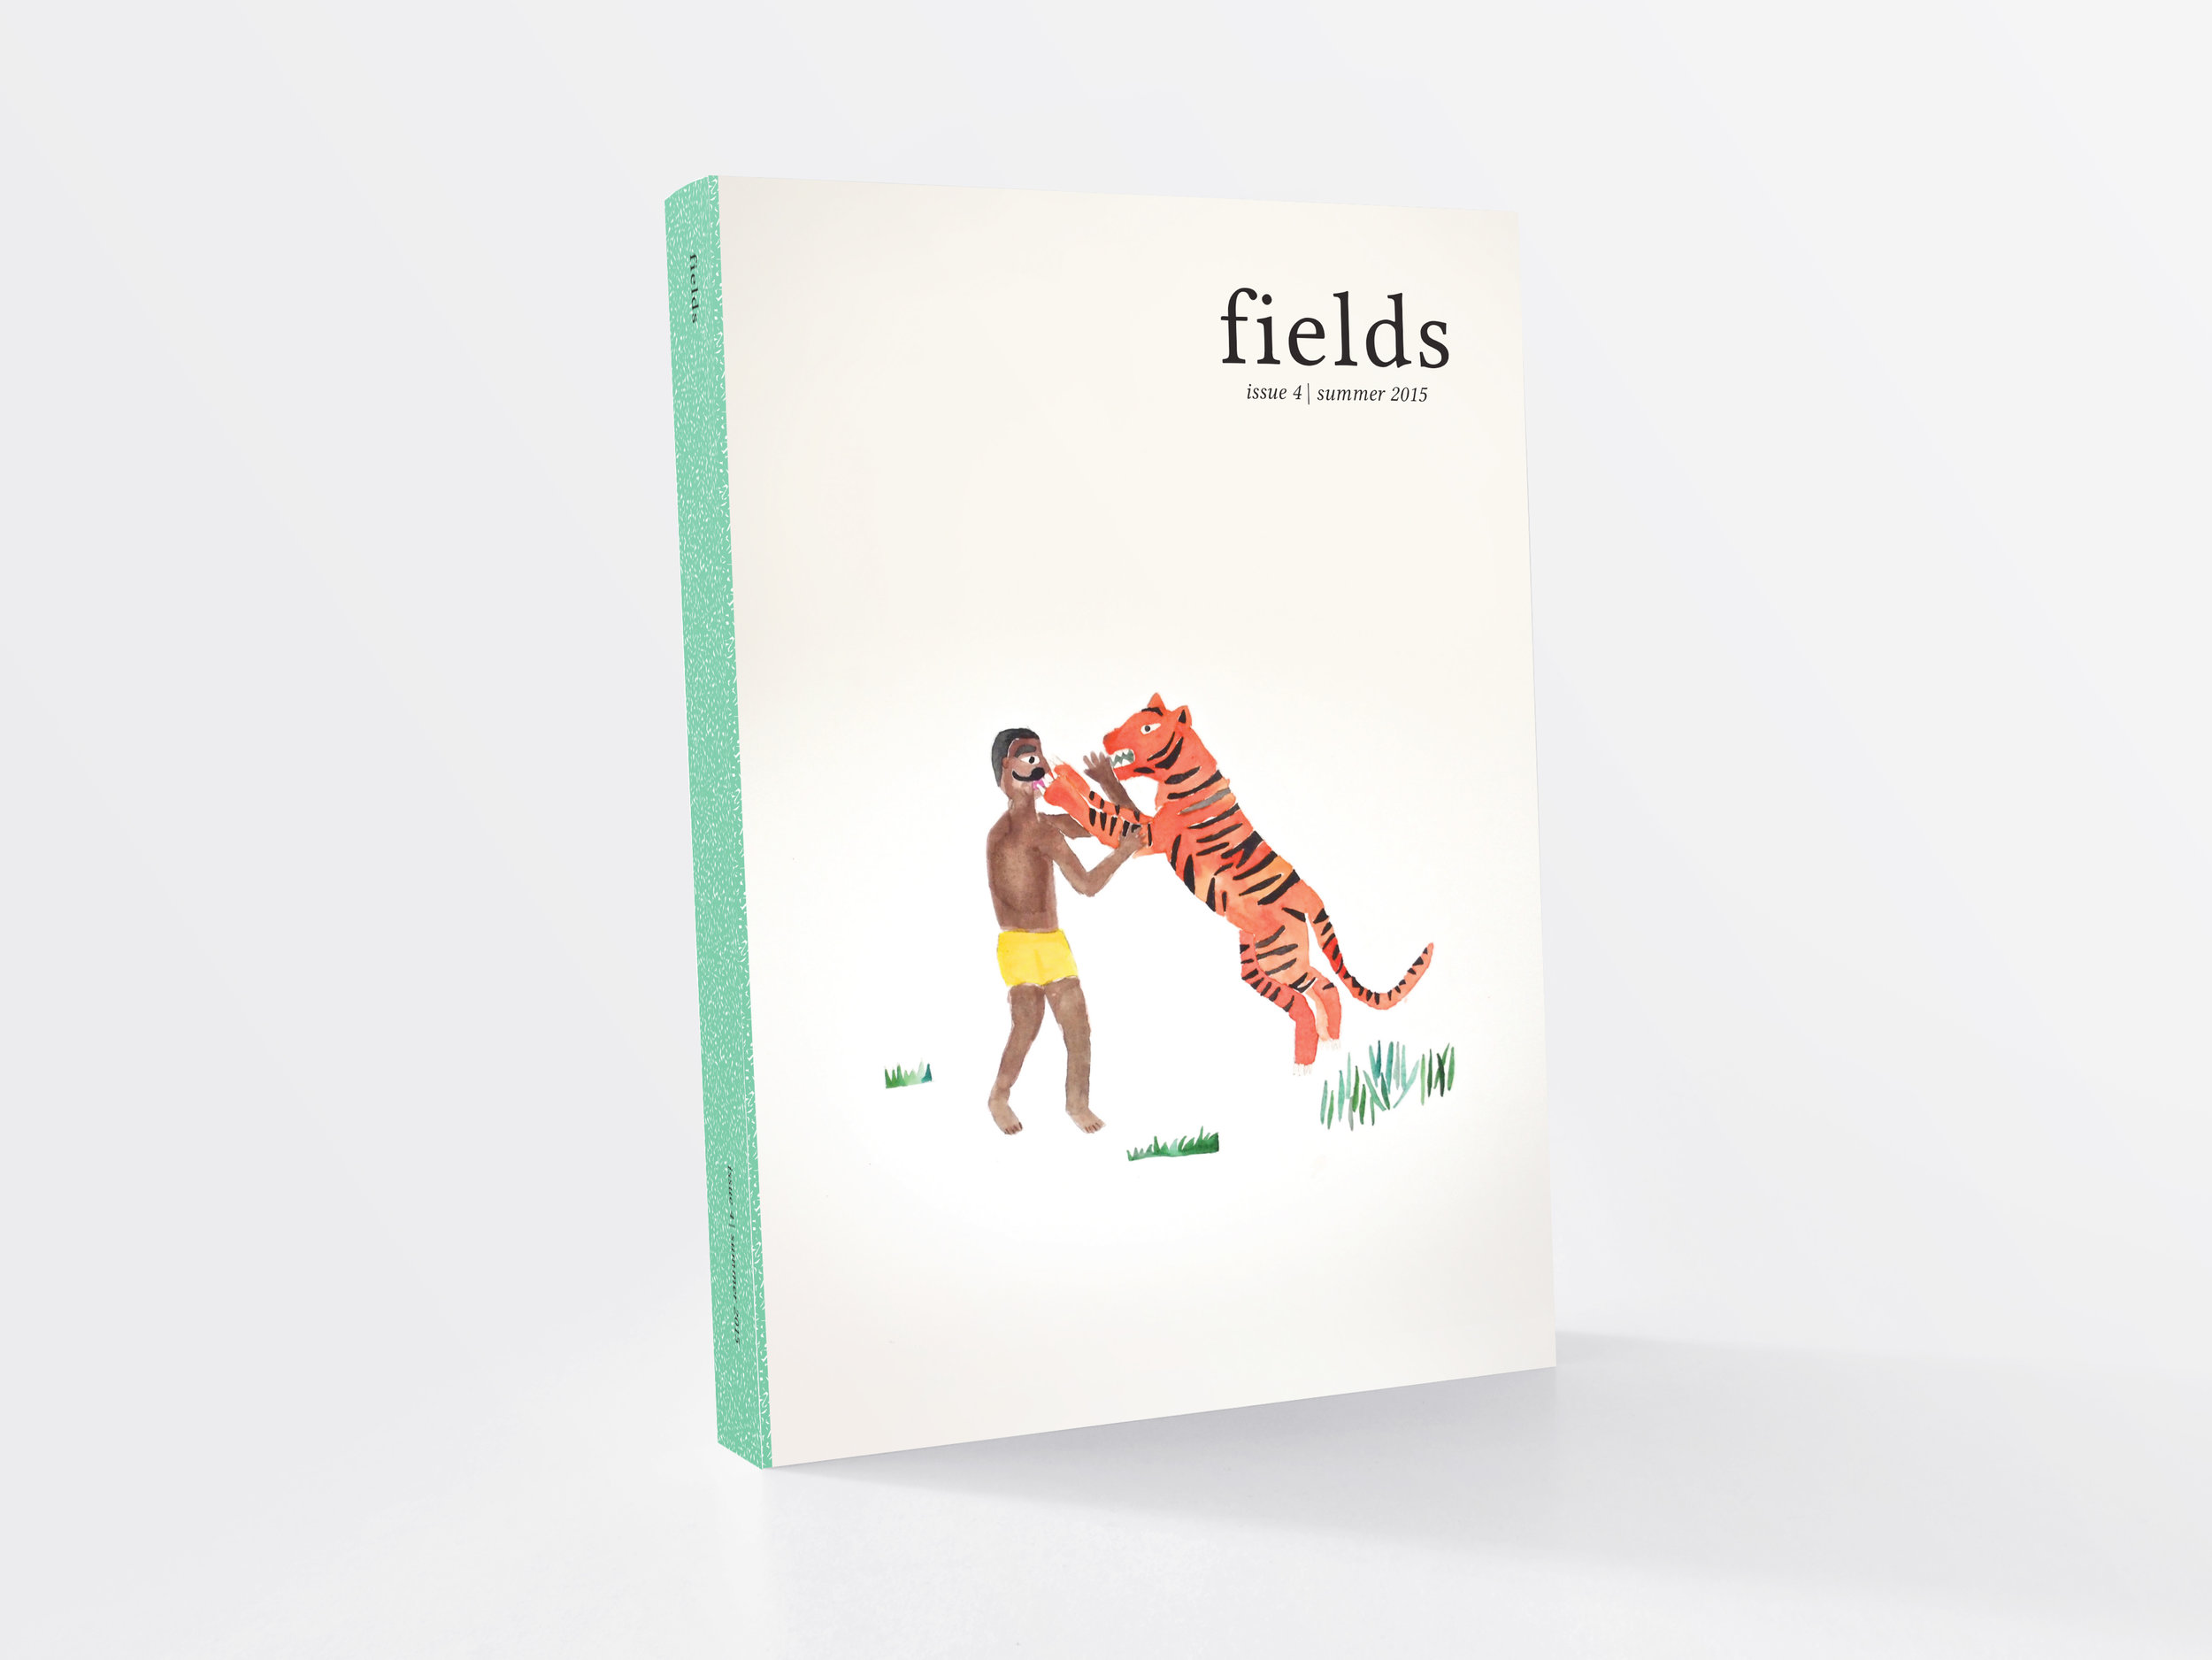 fields_issue_4_cover.jpg